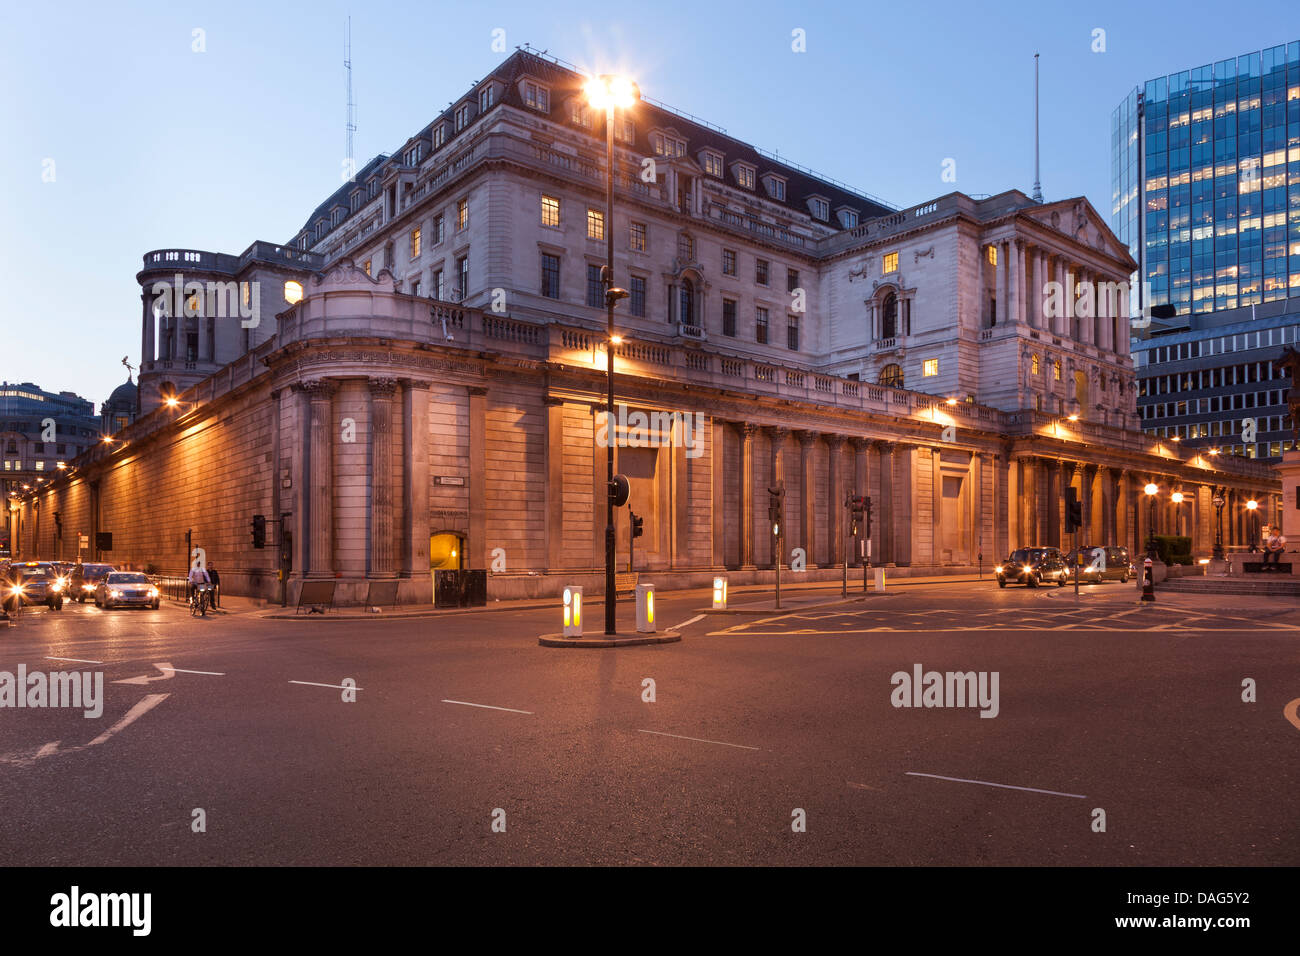 The Bank of England Building at night,view from Bank Junction,City of London,England - Stock Image